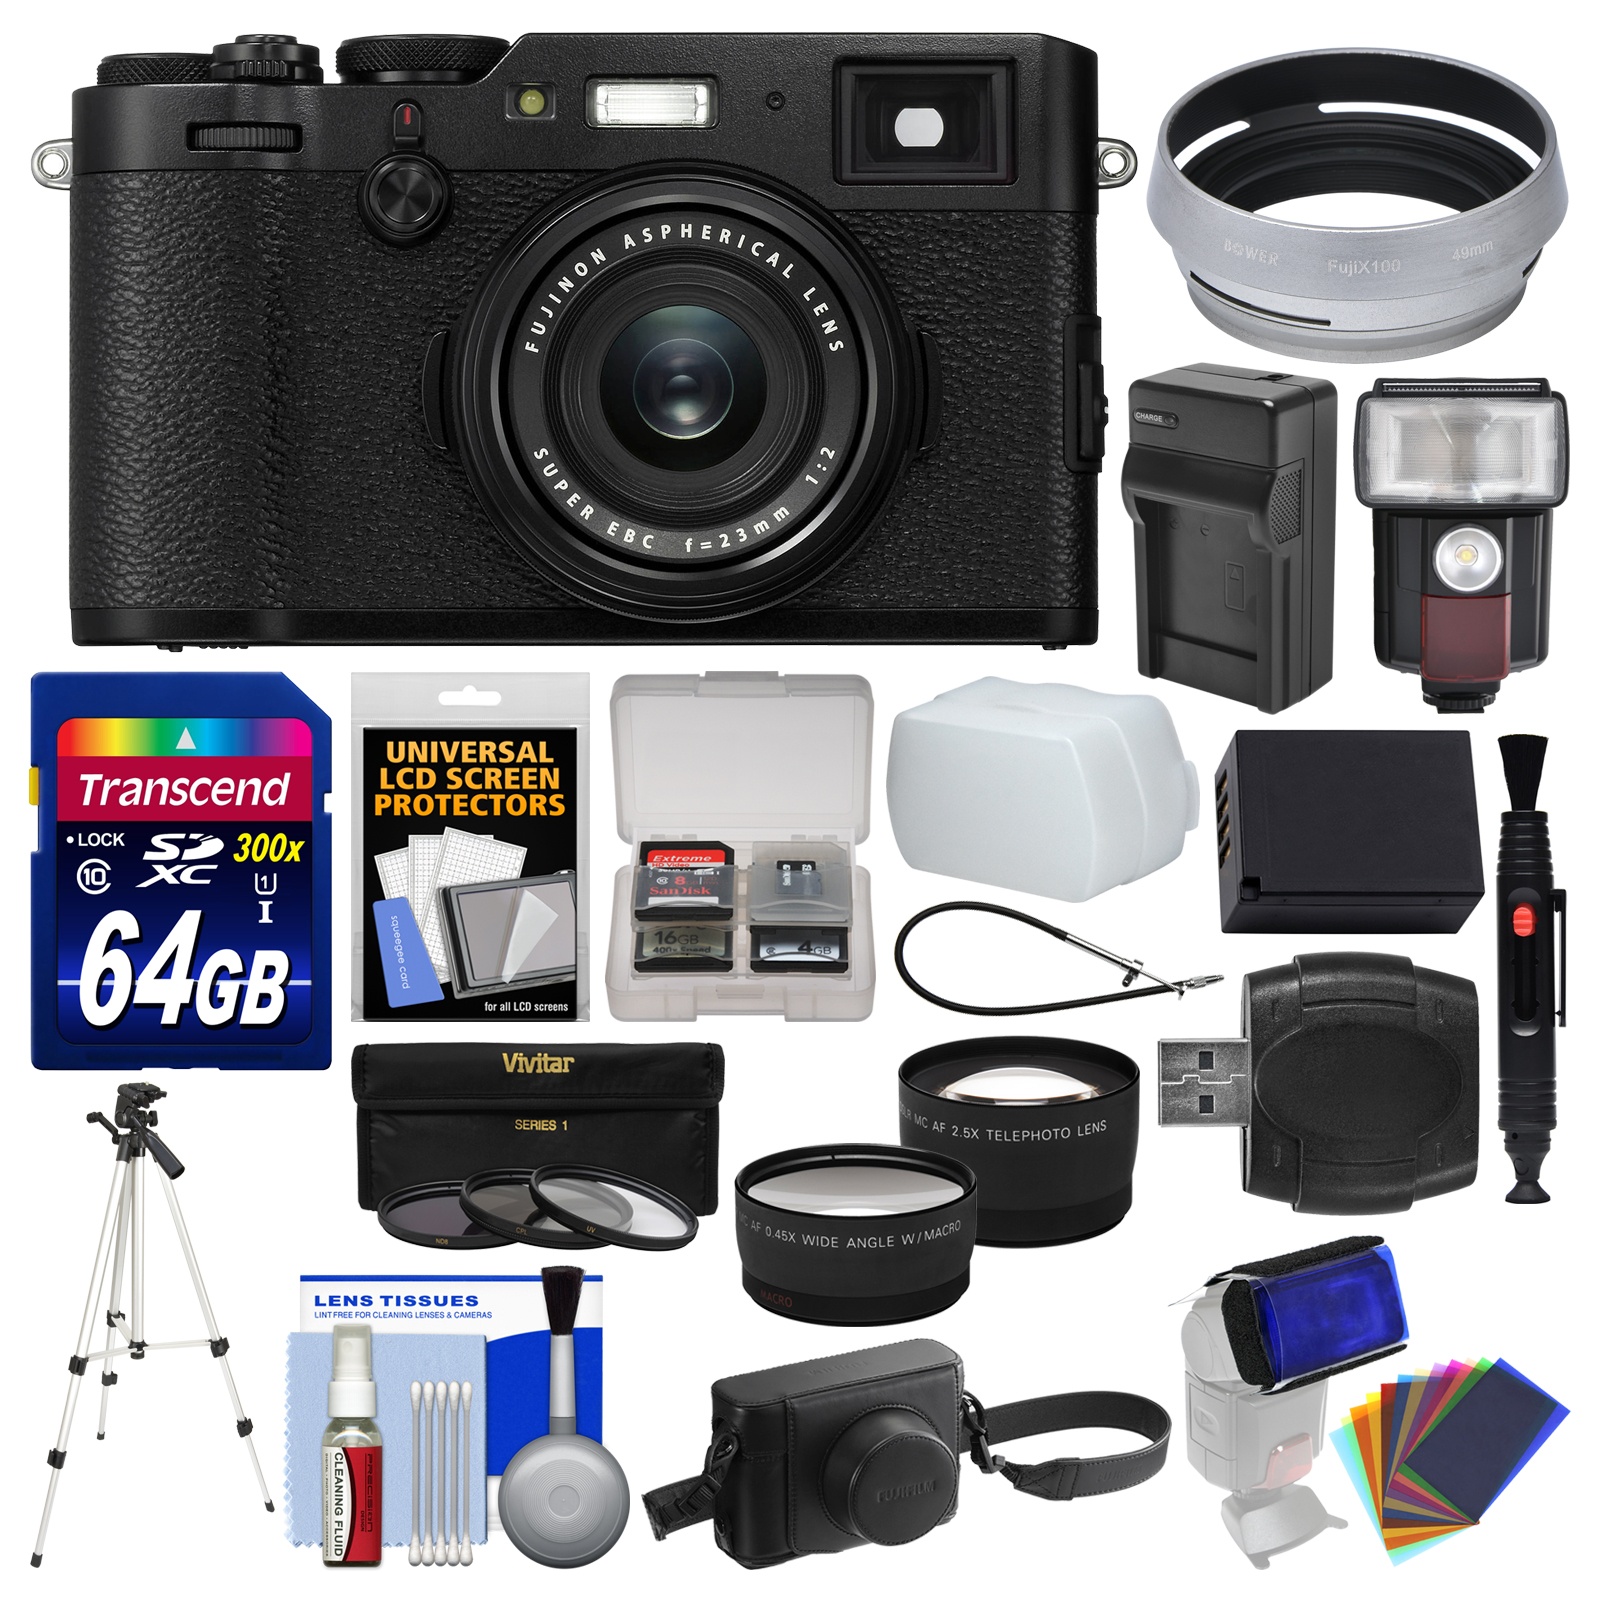 FujiFilm X100F Wi-Fi Digital Camera (Black) with Leather Case + 64GB Card + Flash Video Light + Battery &... by Fujifilm